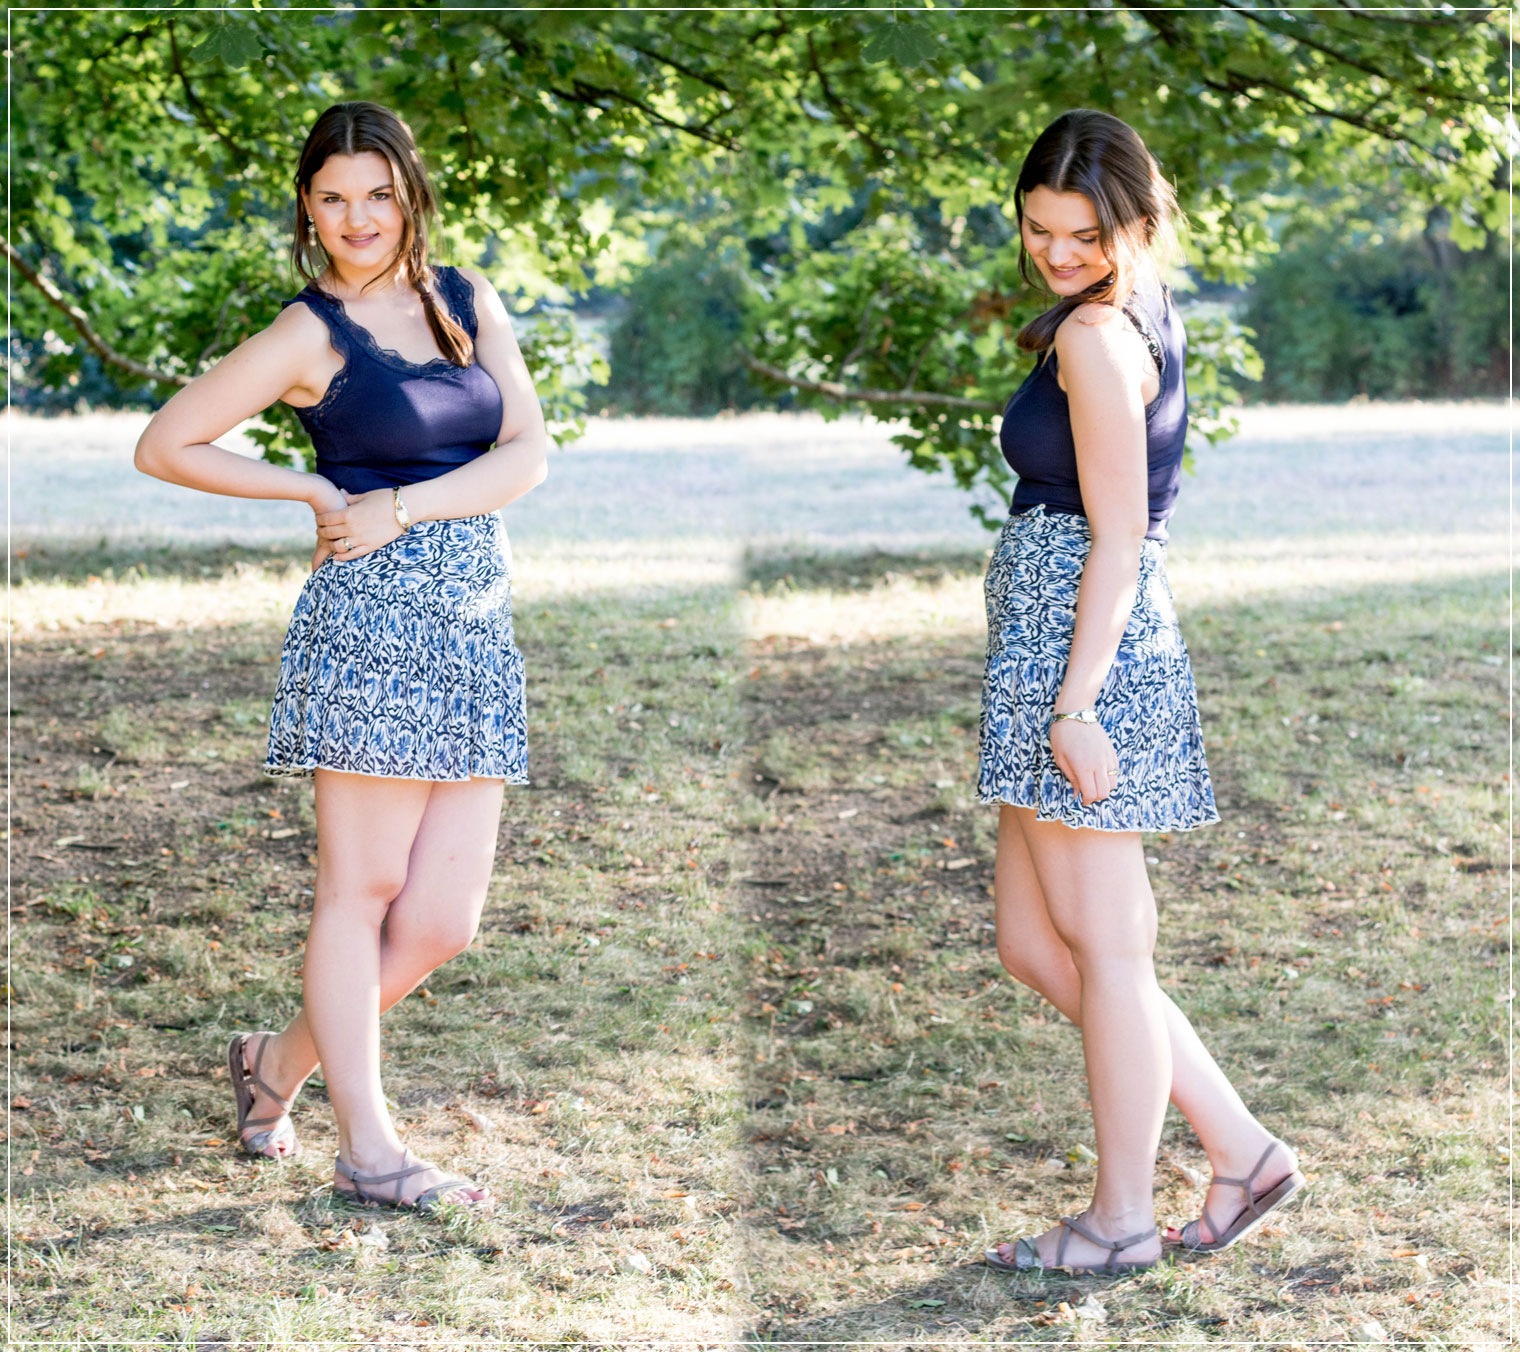 Materialkunde, Sommermaterialen, Chiffonrock, Spitzentop, Chiffon, Leipzig, Sommeroutfit, Outfitinspiration, Summerstyle, Boho, Modebloggerin, Fashionbloggerin, Modeblog, Ruhrgebiet